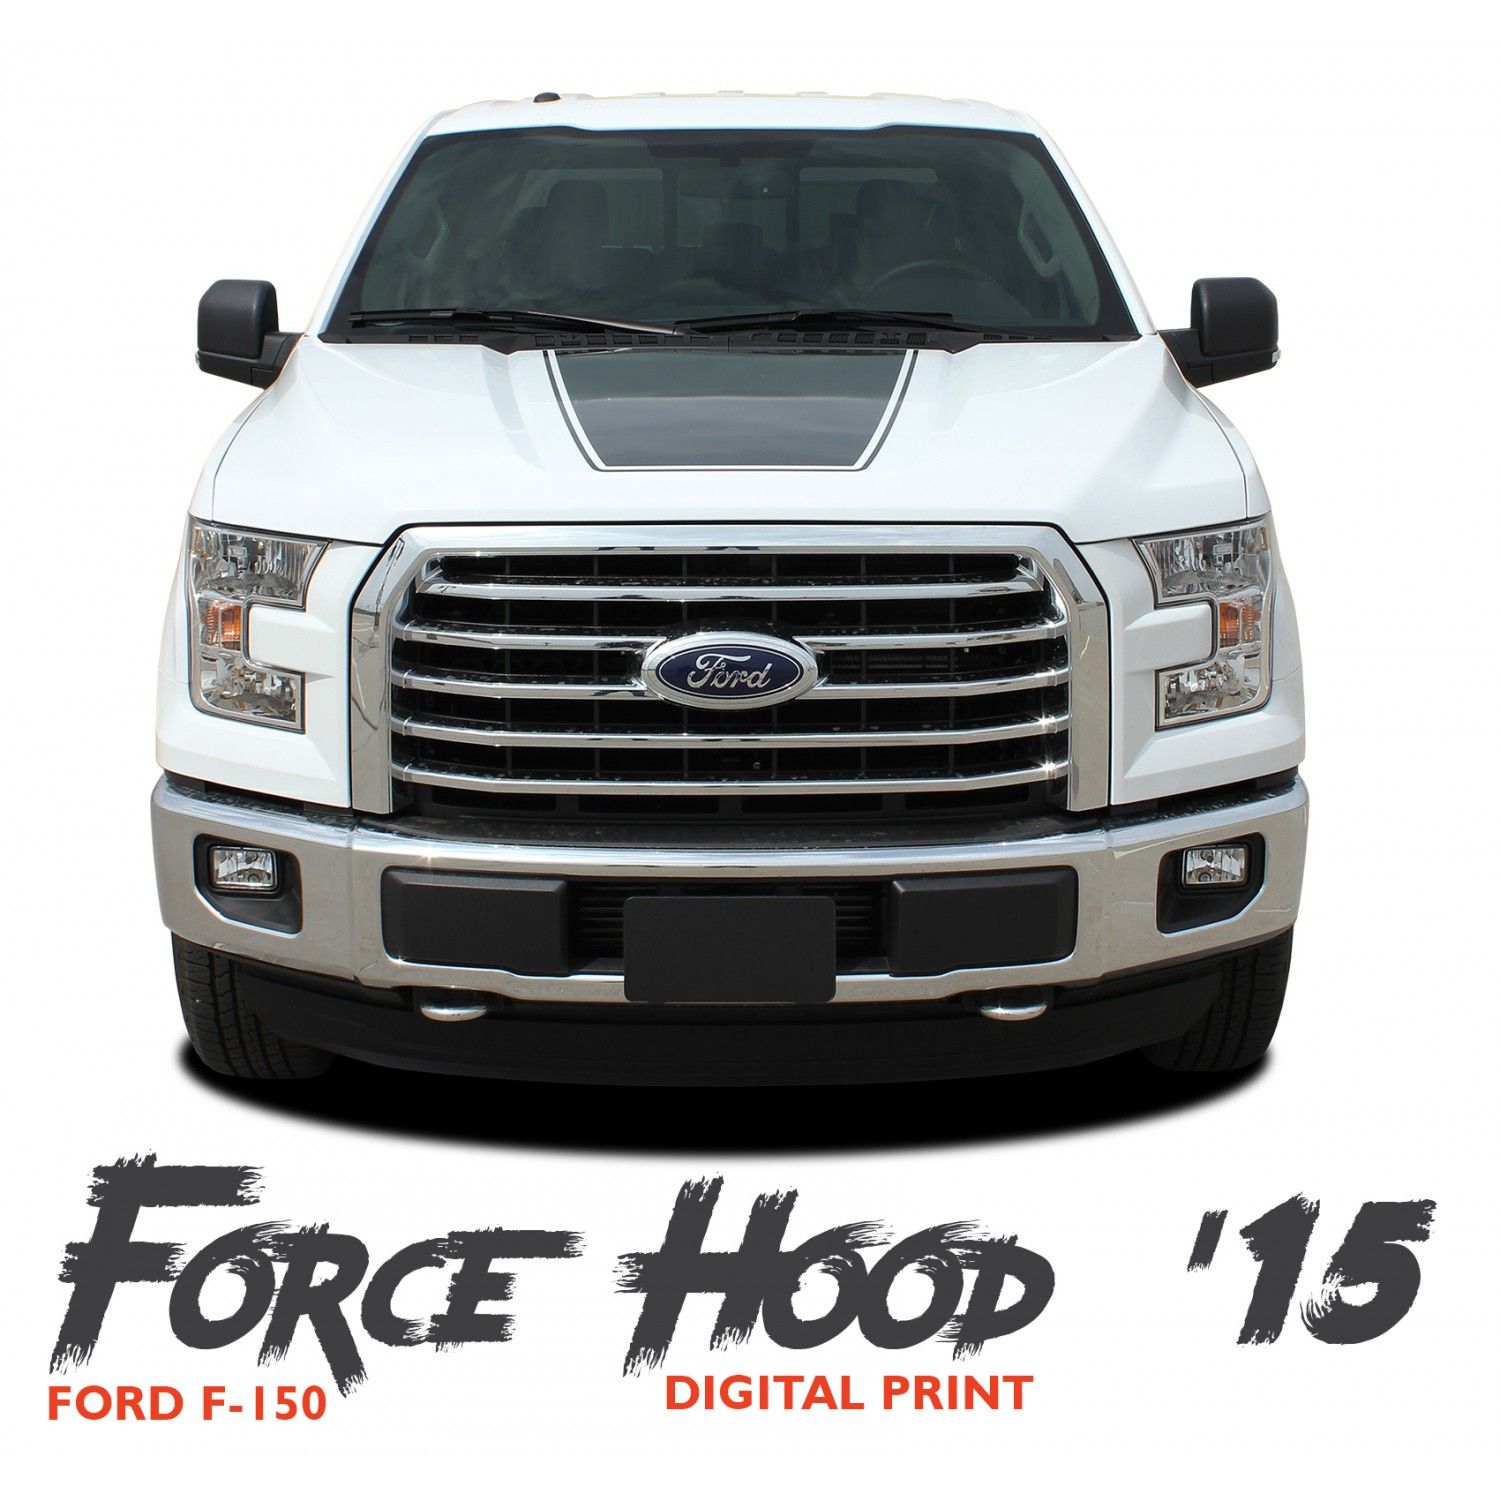 Ford F 150 Force Hood 15 Digital Appearance Package Center Wide Hood Vinyl Graphic Decal Kit For 2015 2016 2017 2018 2019 2020 Ford F150 Car Vinyl Graphics Vinyl Graphics